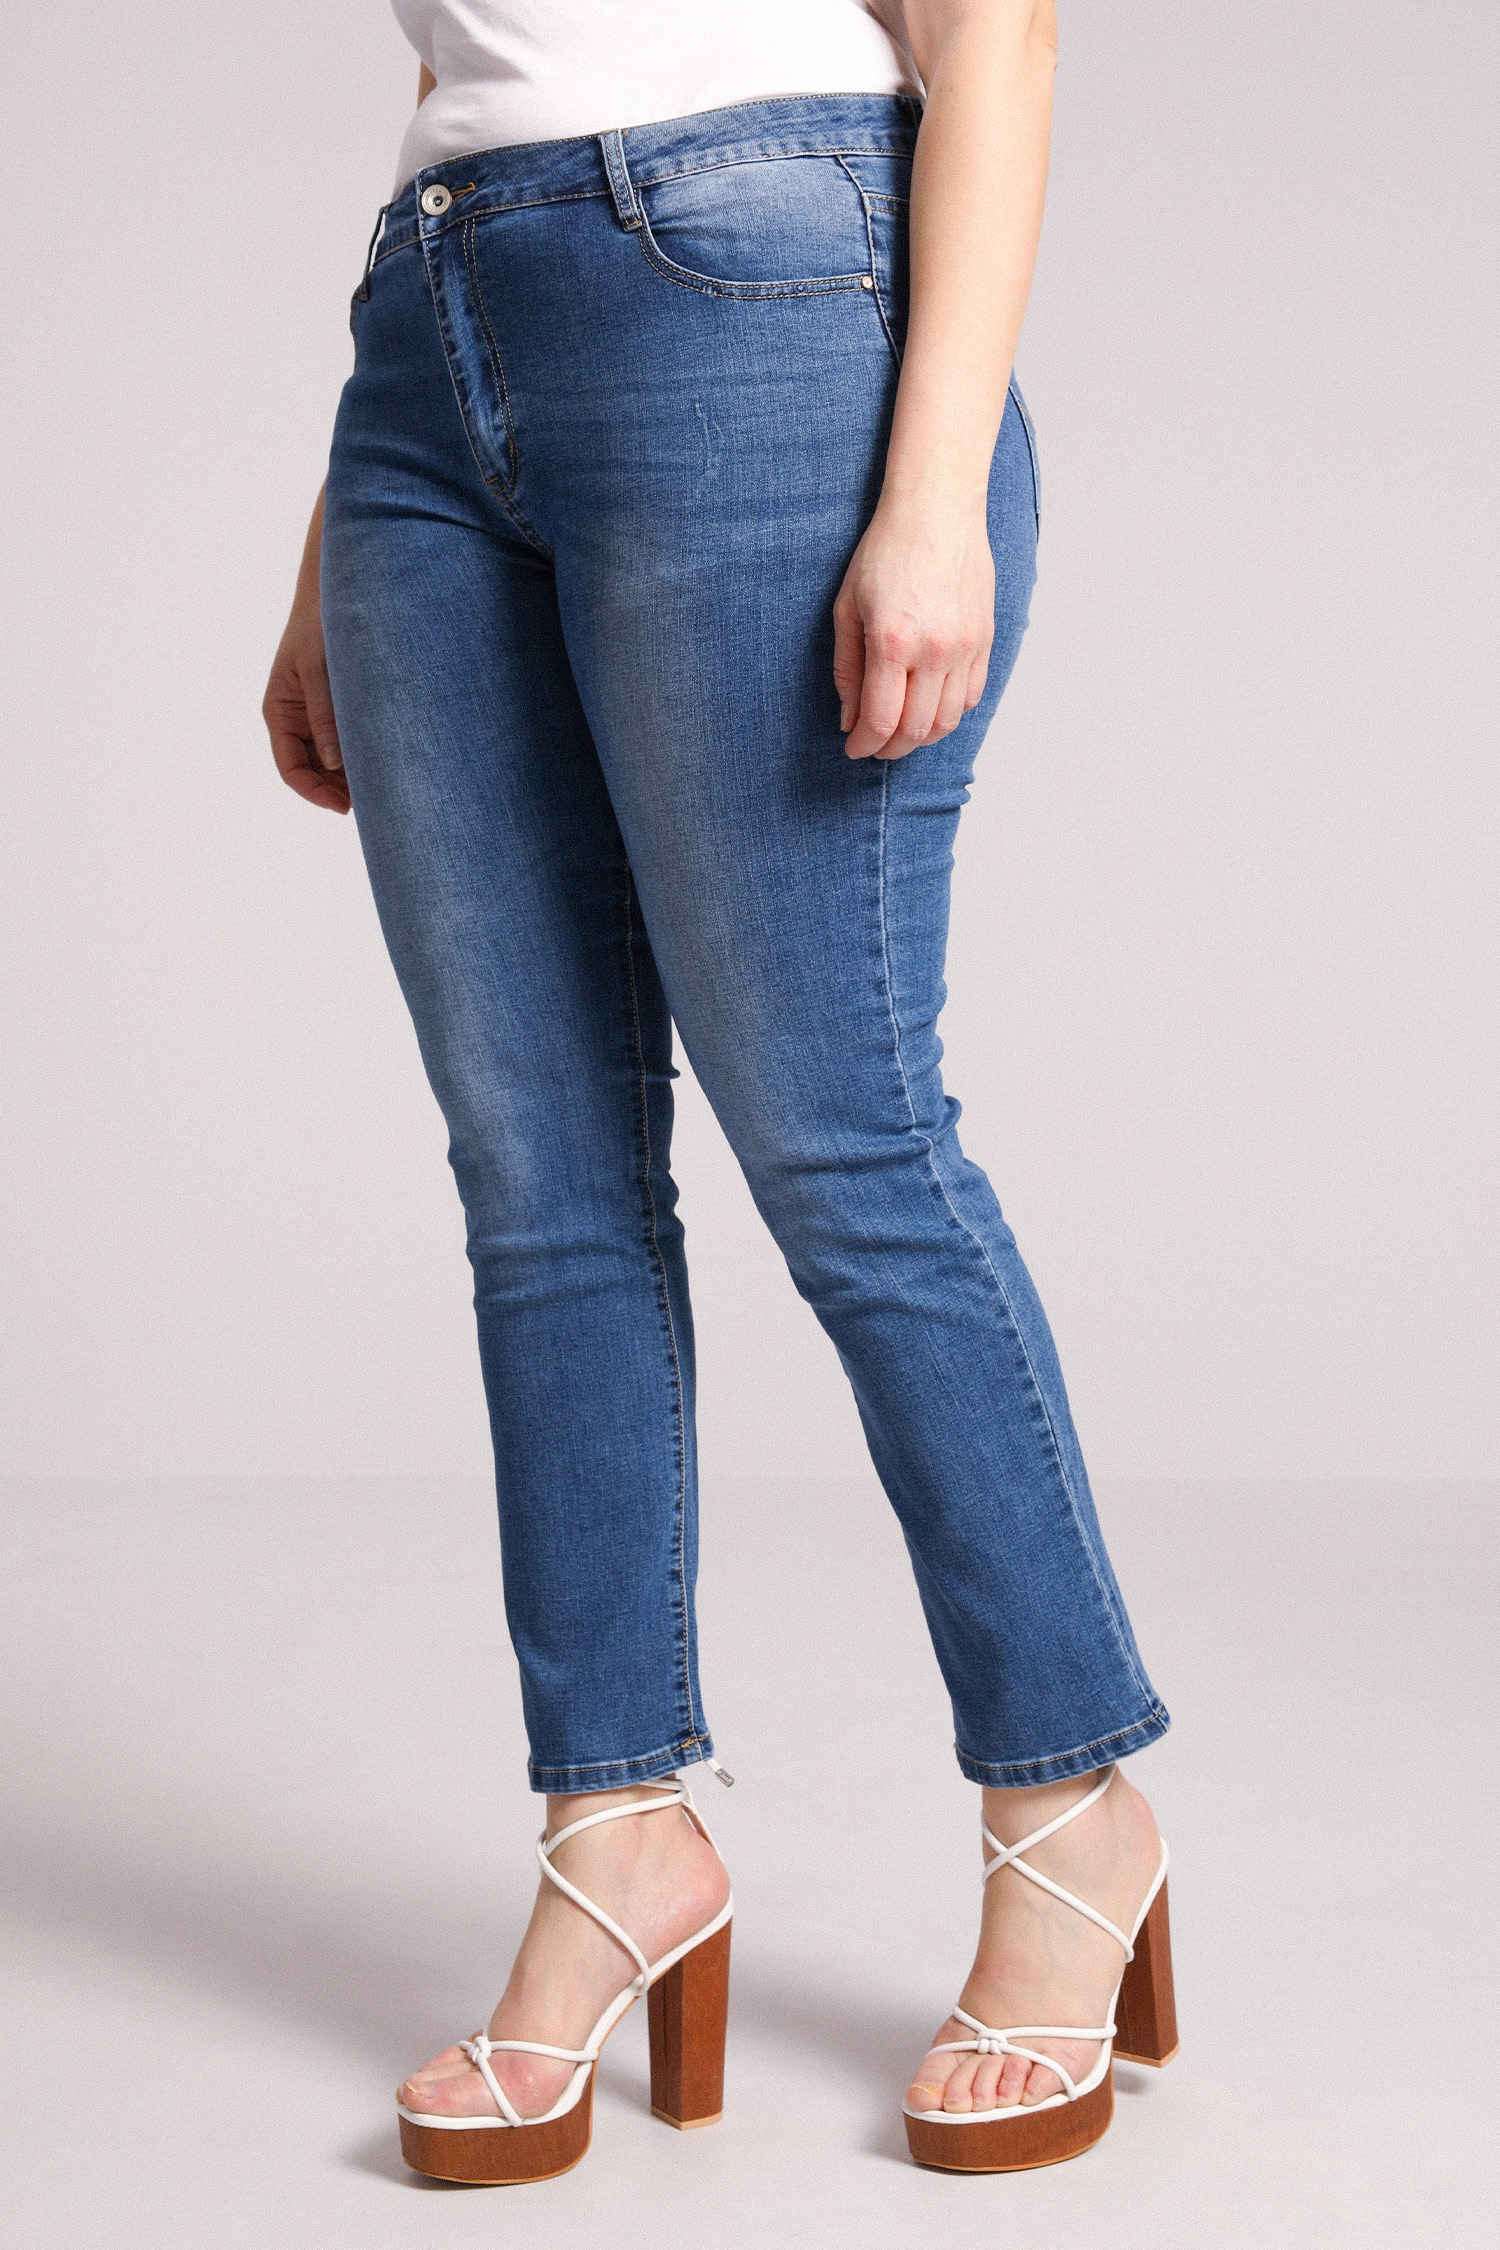 Clear used jeans